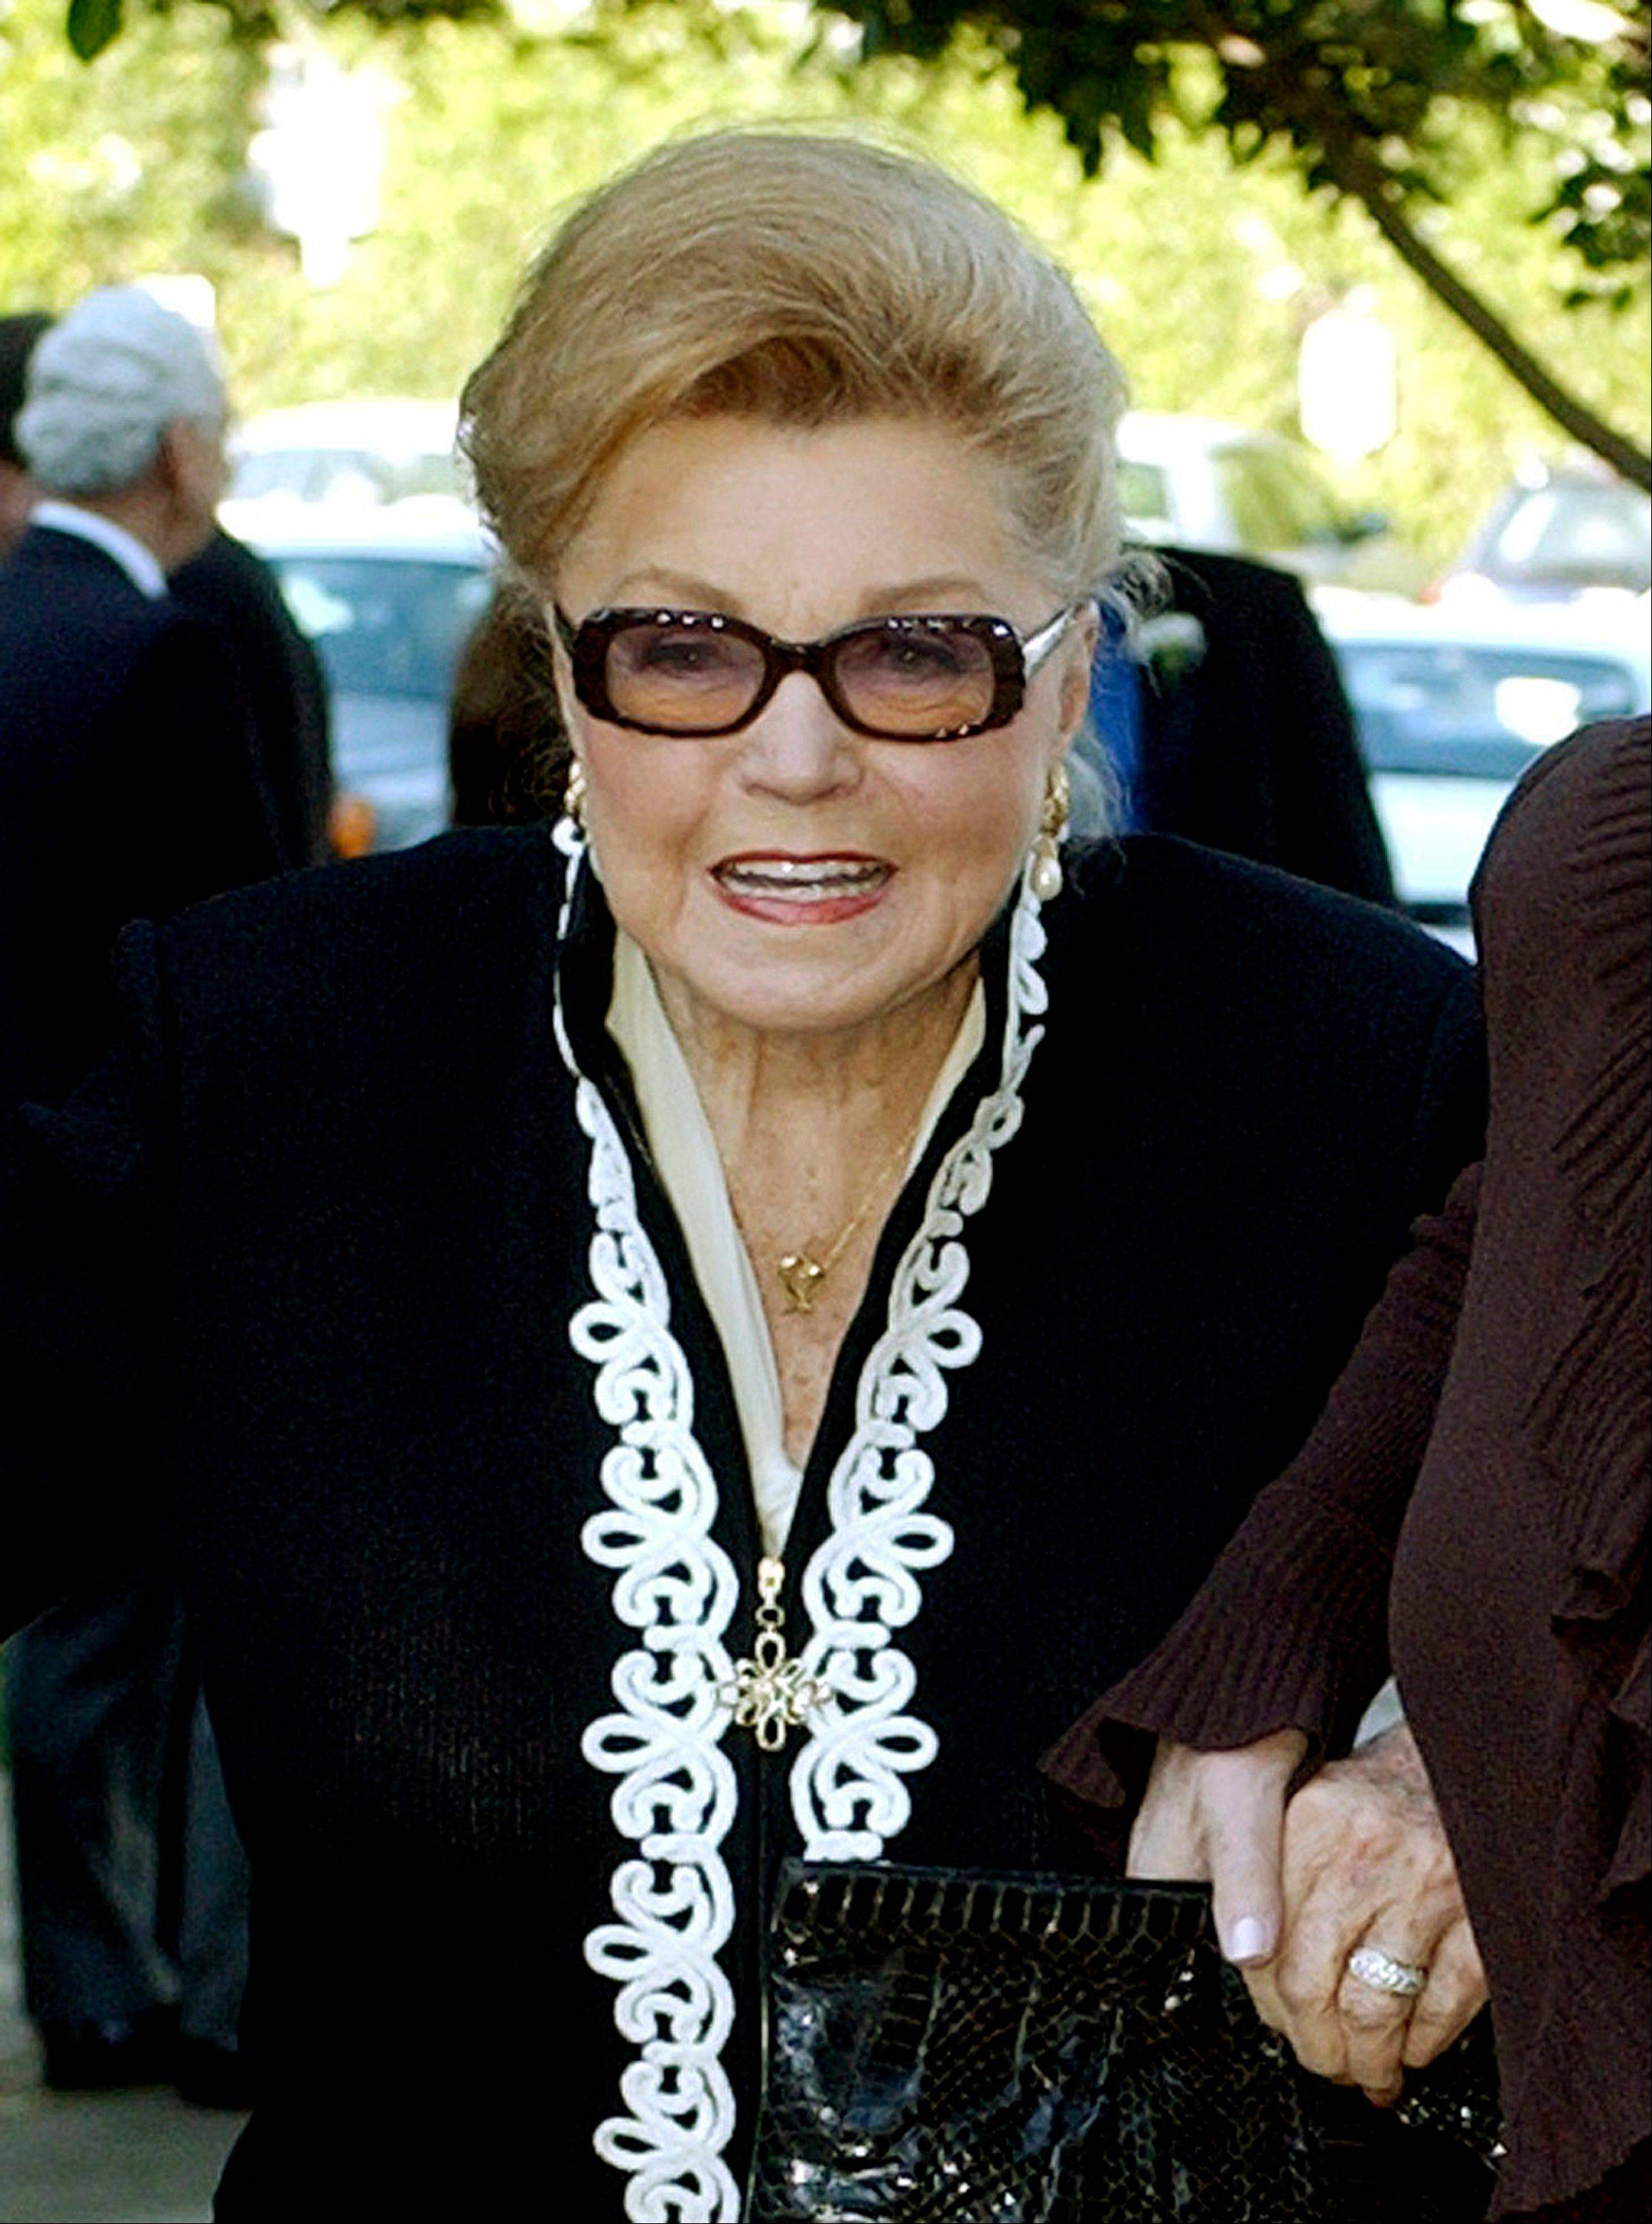 This Jan. 28, 2004 file photo shows Esther Williams at the funeral service for dancer/actress Ann Miller at St. Mel Catholic Church in Los Angeles' Woodland Hills area.